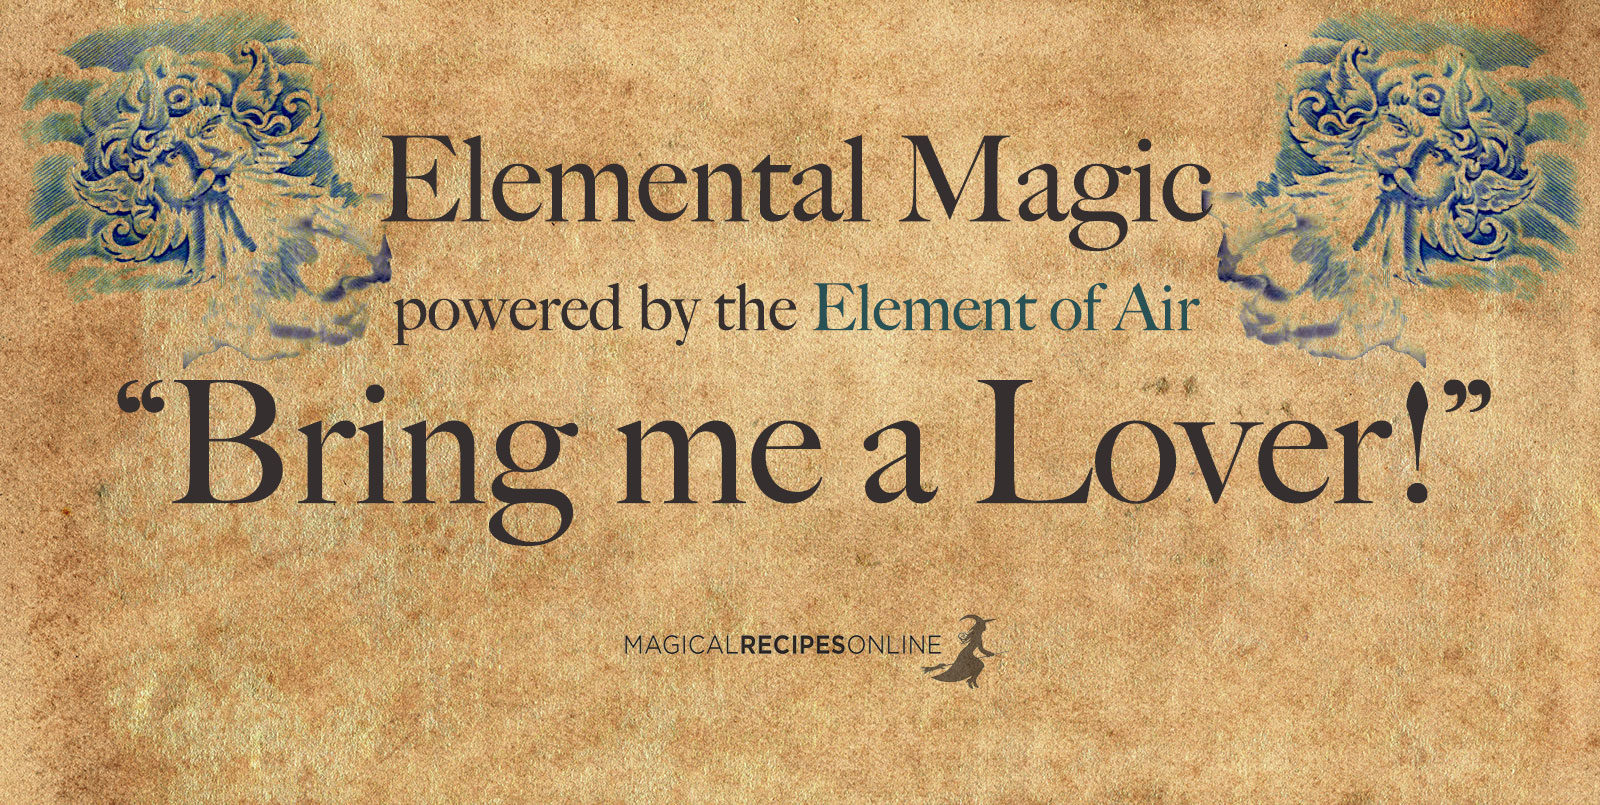 Bring Me a love - elemental spell - element of air